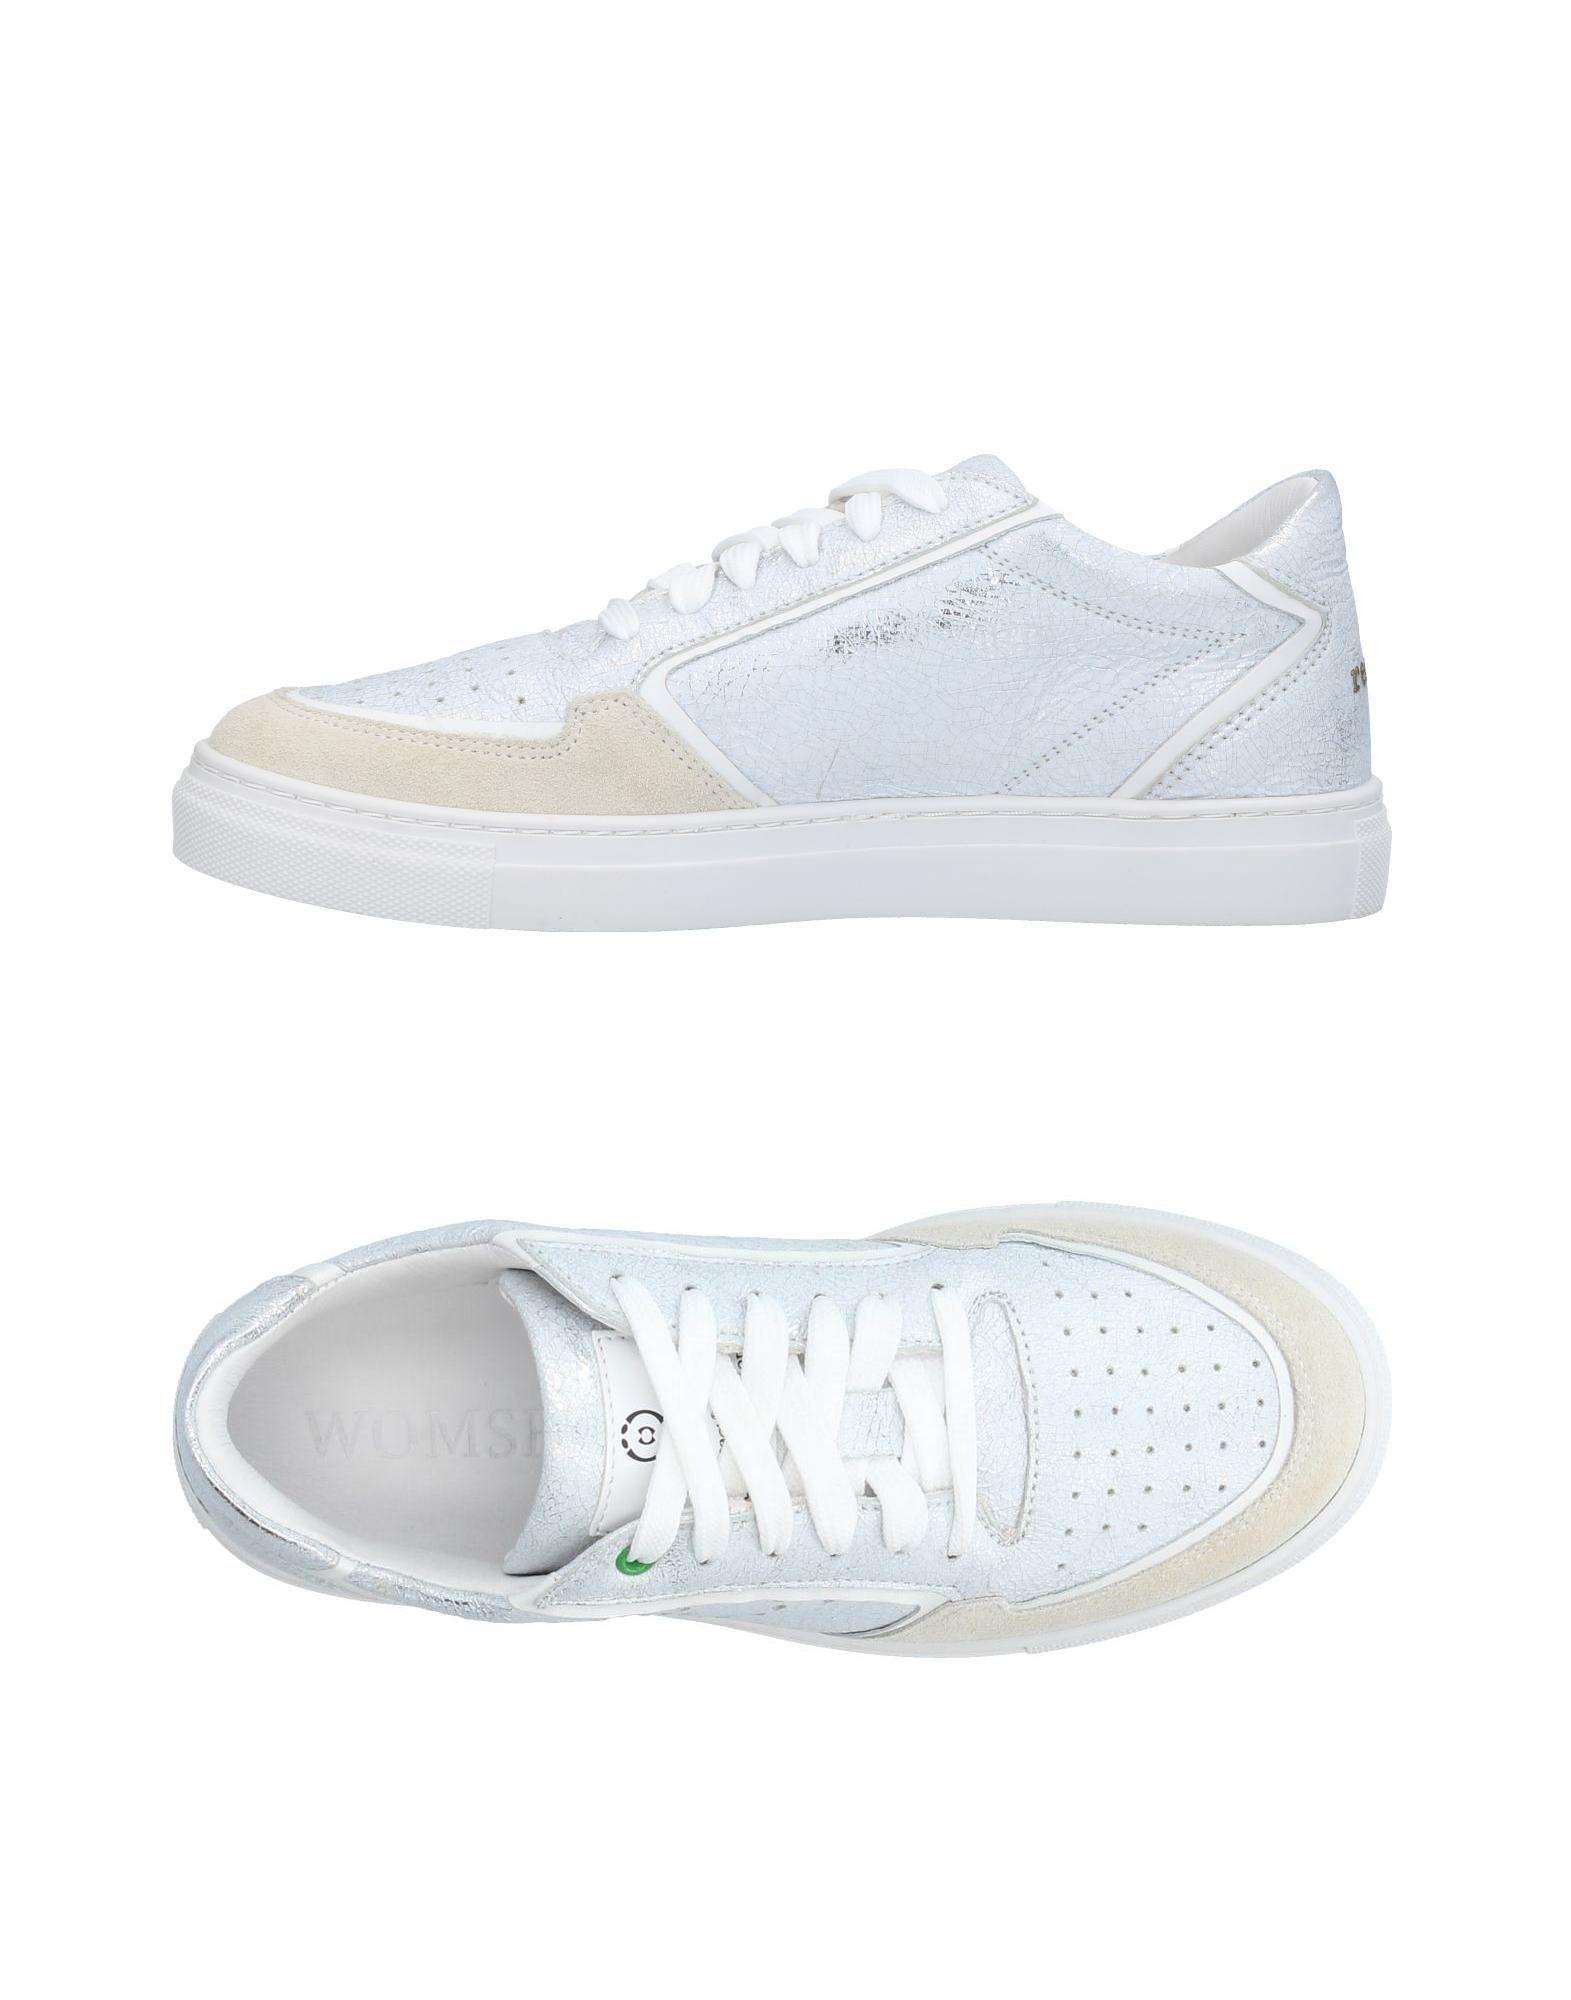 A buon mercato Sneakers Womsh Donna - 11399876JA